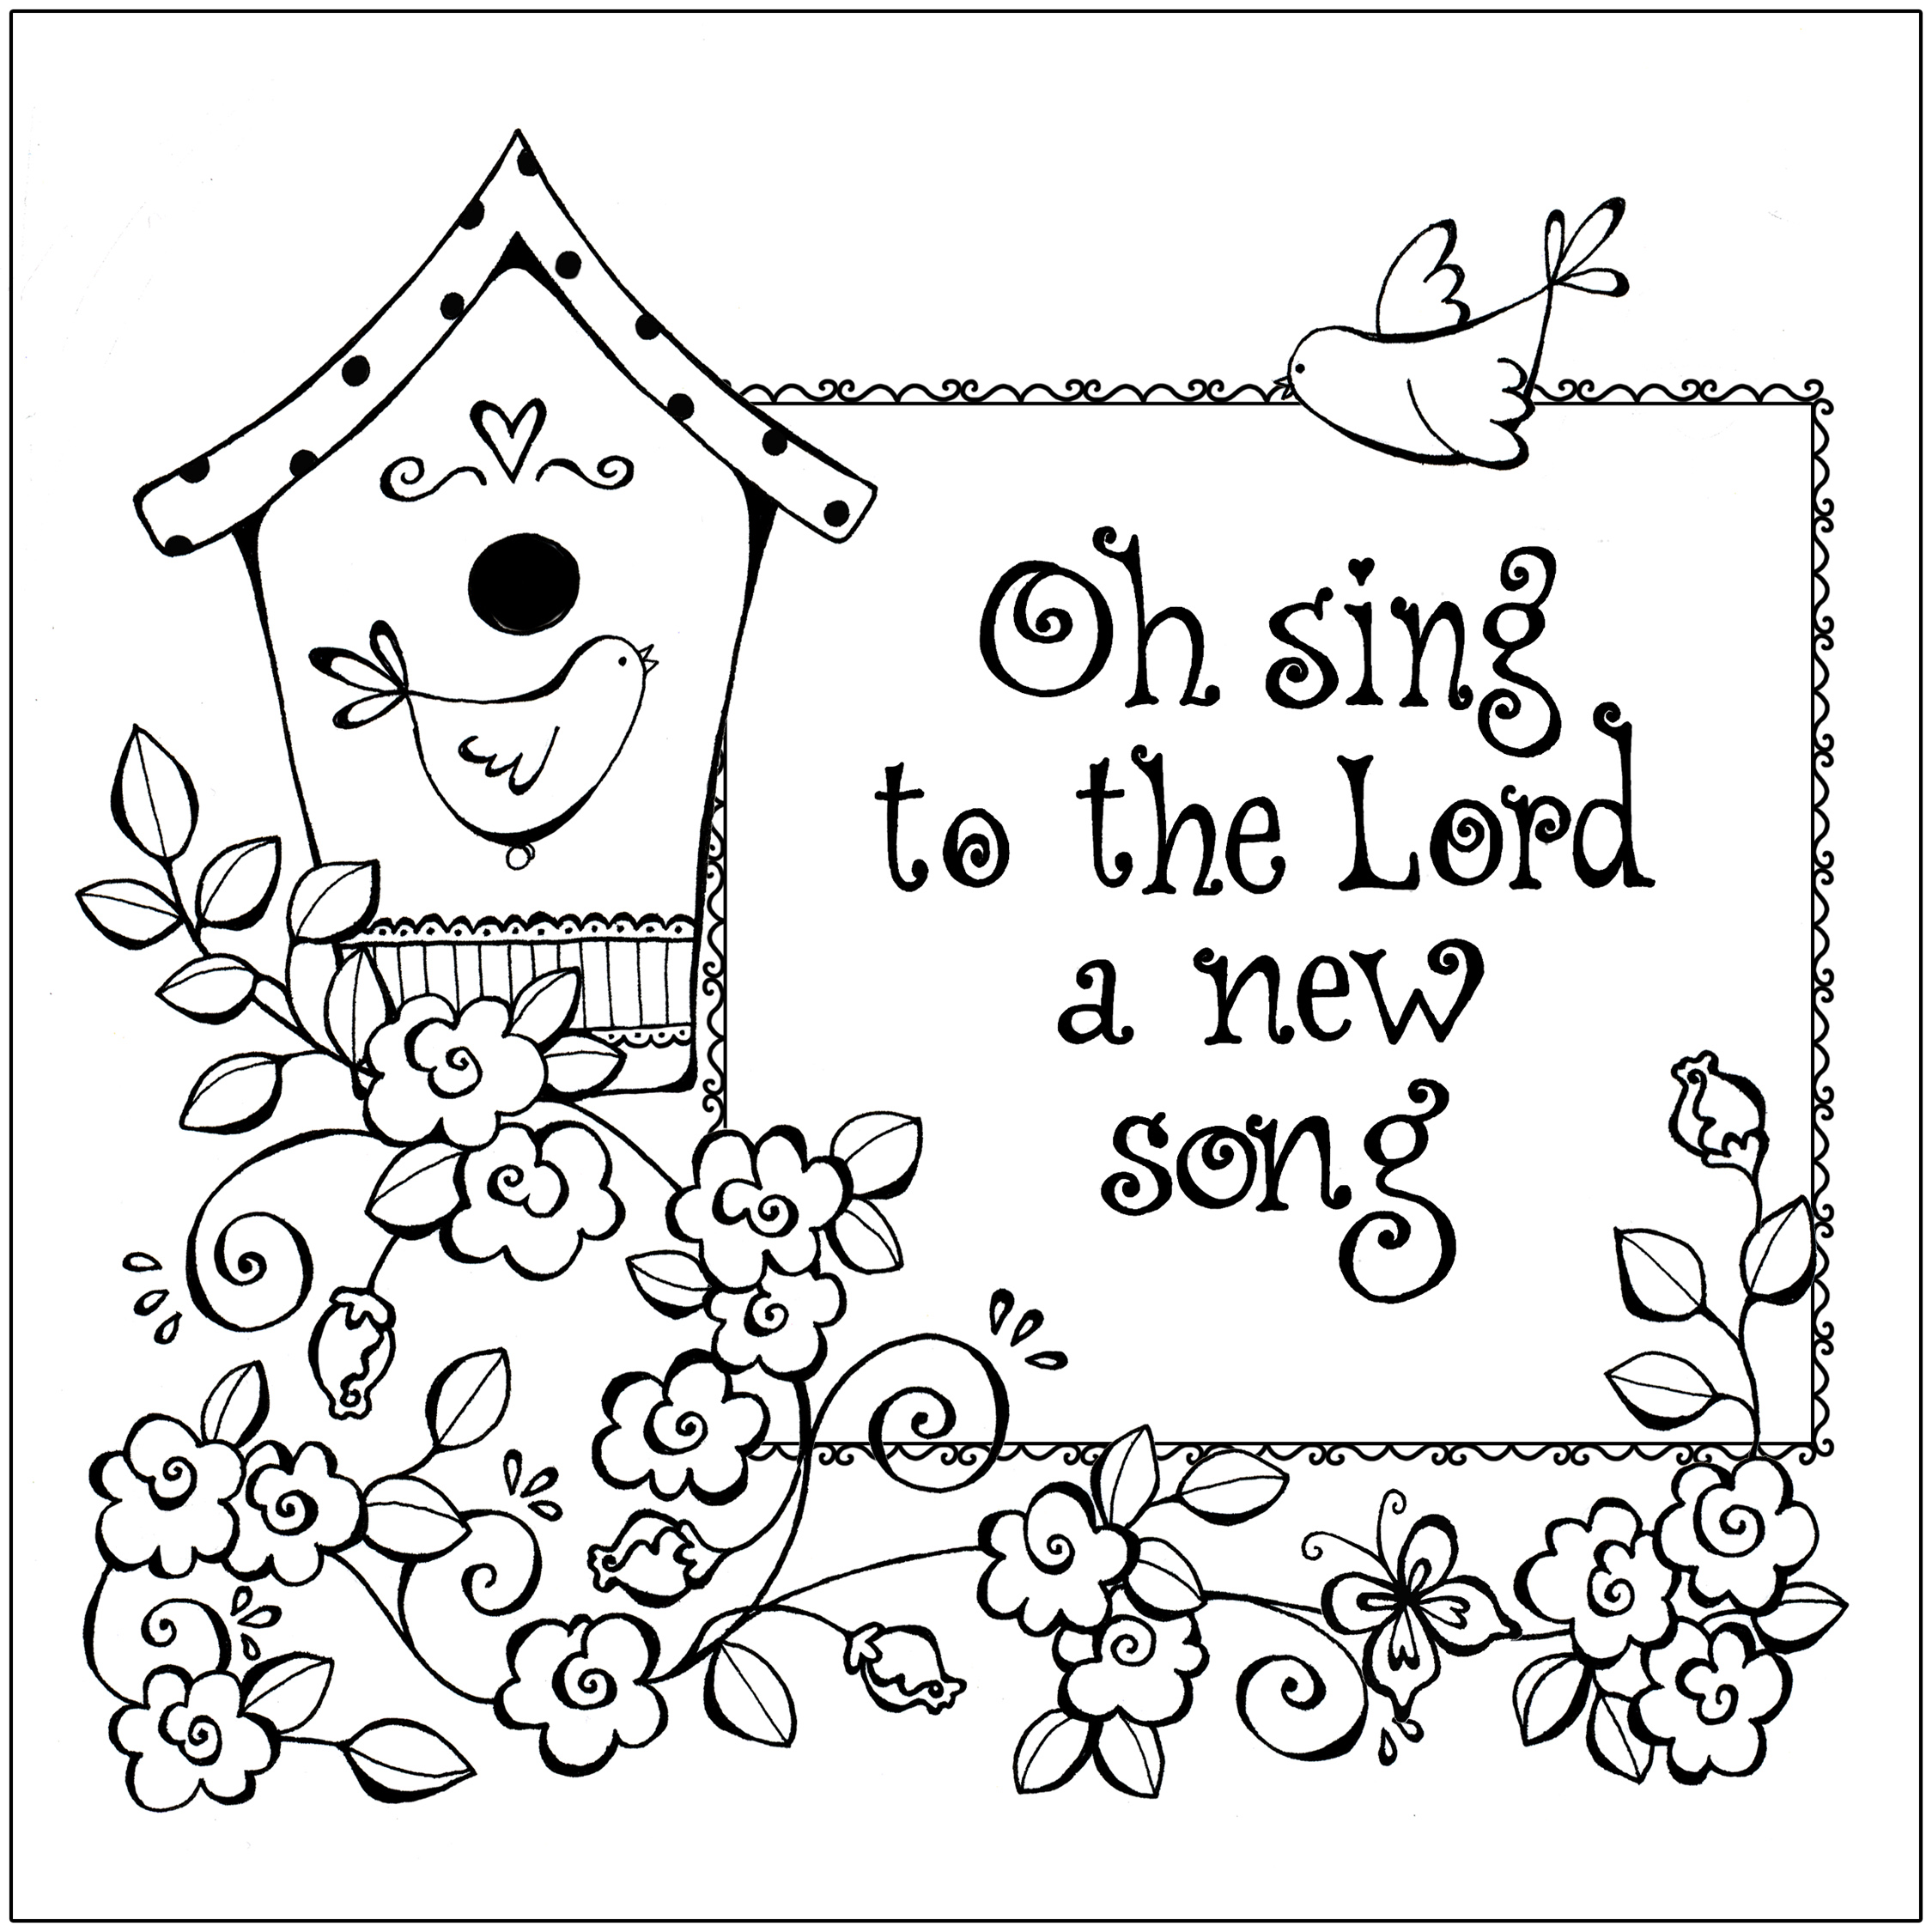 christian coloring page printable images - Christian Coloring Pages